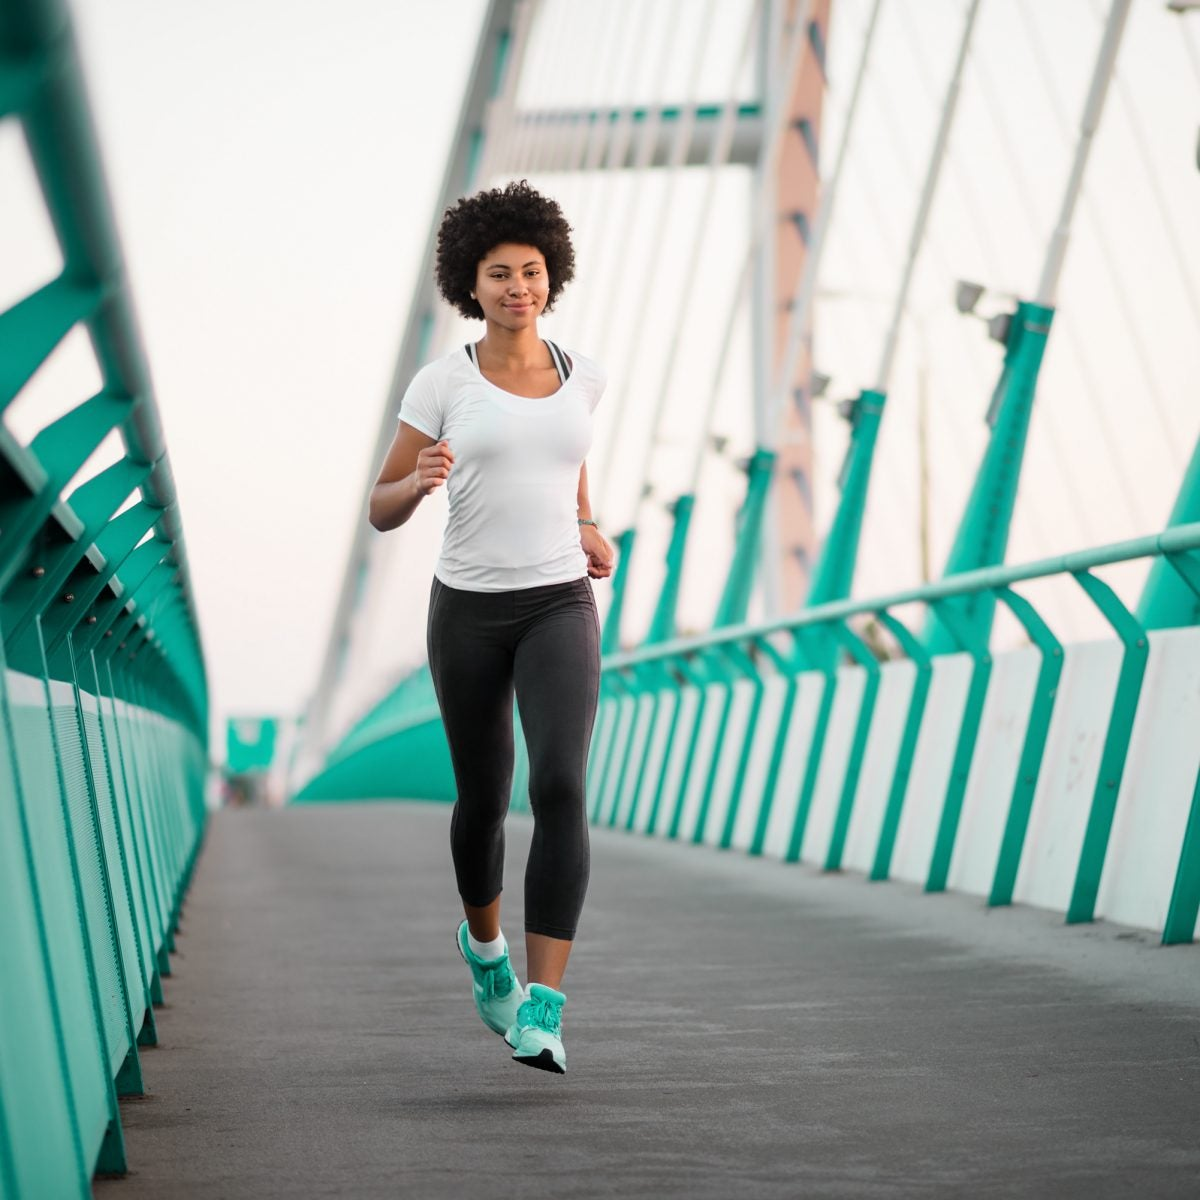 The Dos and Don'ts Of Running While Social Distancing